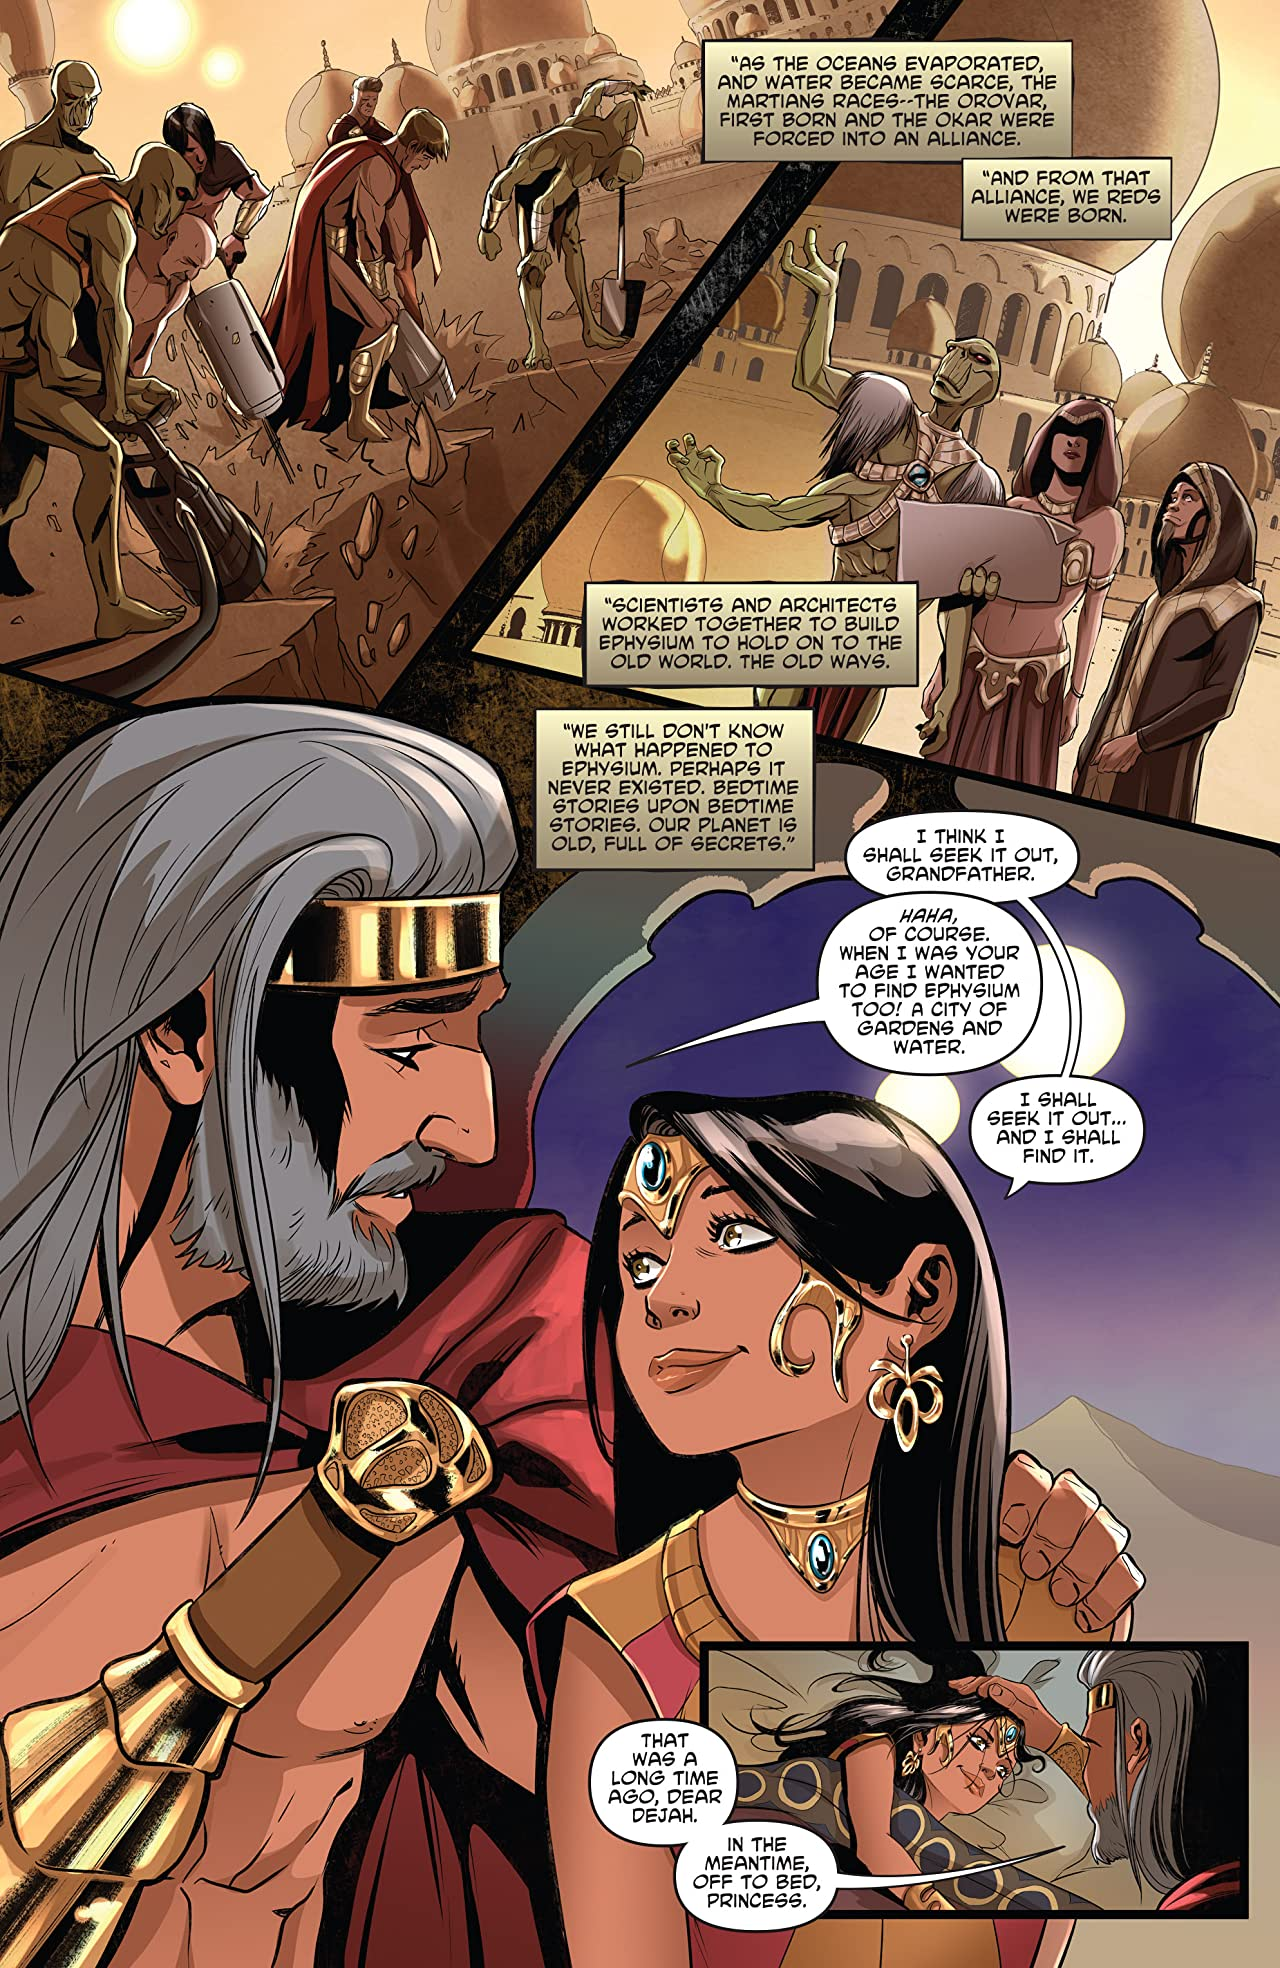 Dejah Thoris Vol. 1: The Garden of Mars